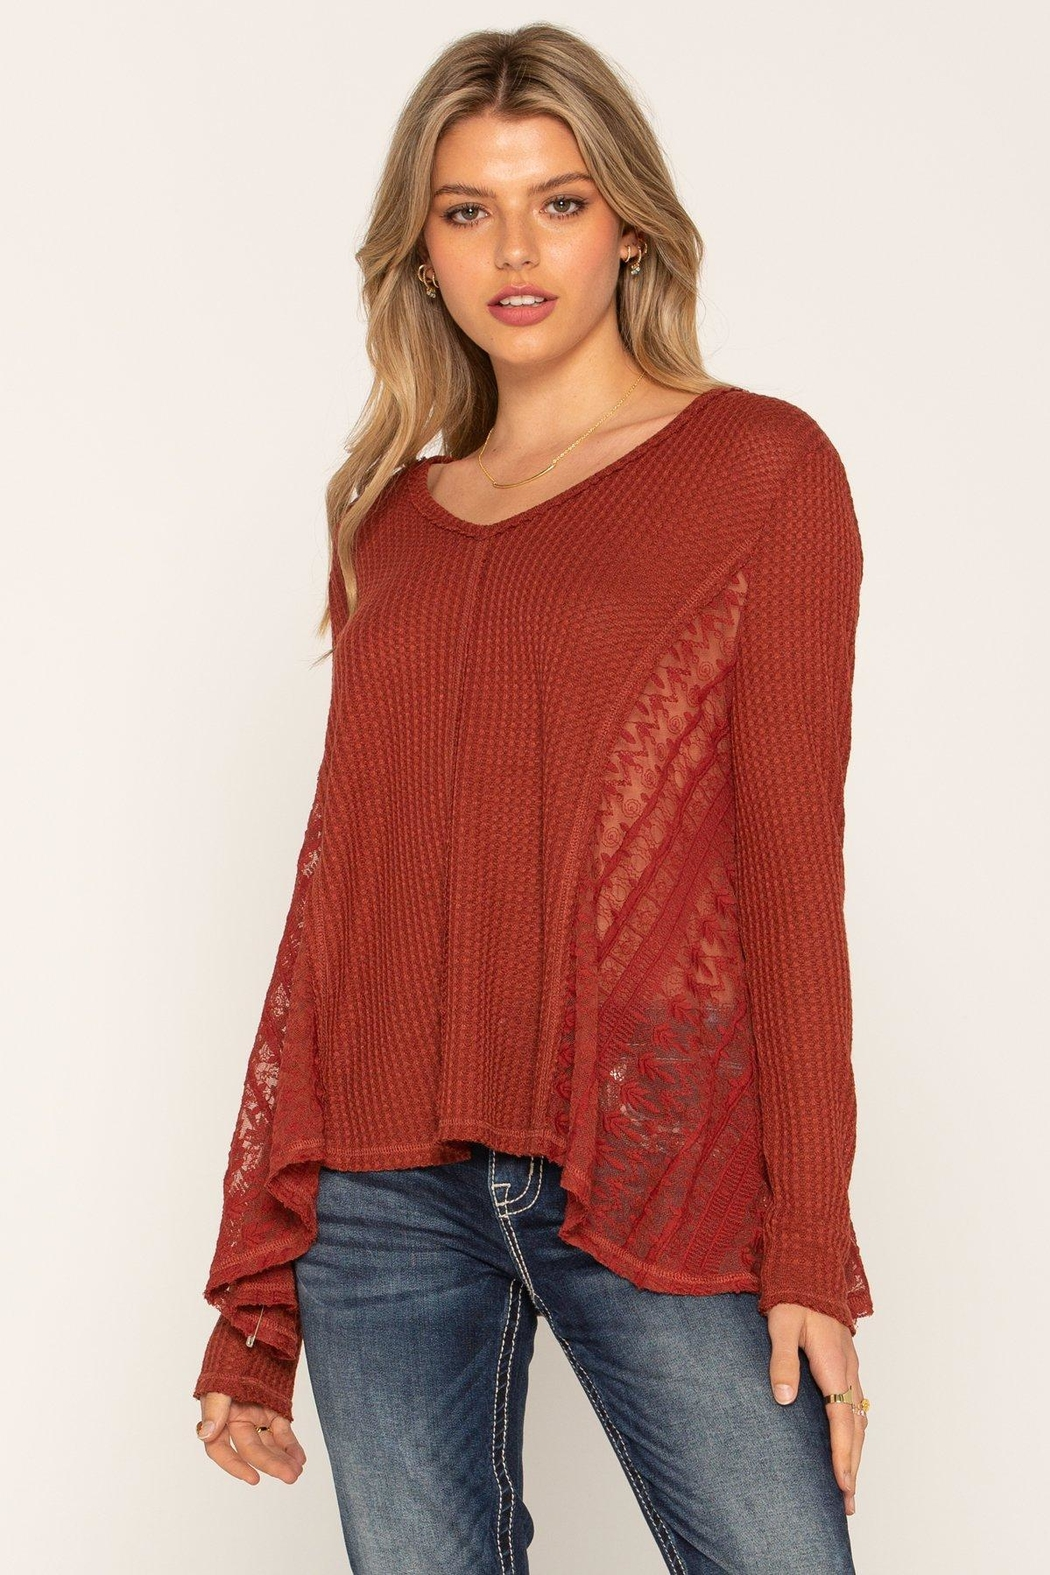 Miss Me Lace Rust Swing Top - Main Image